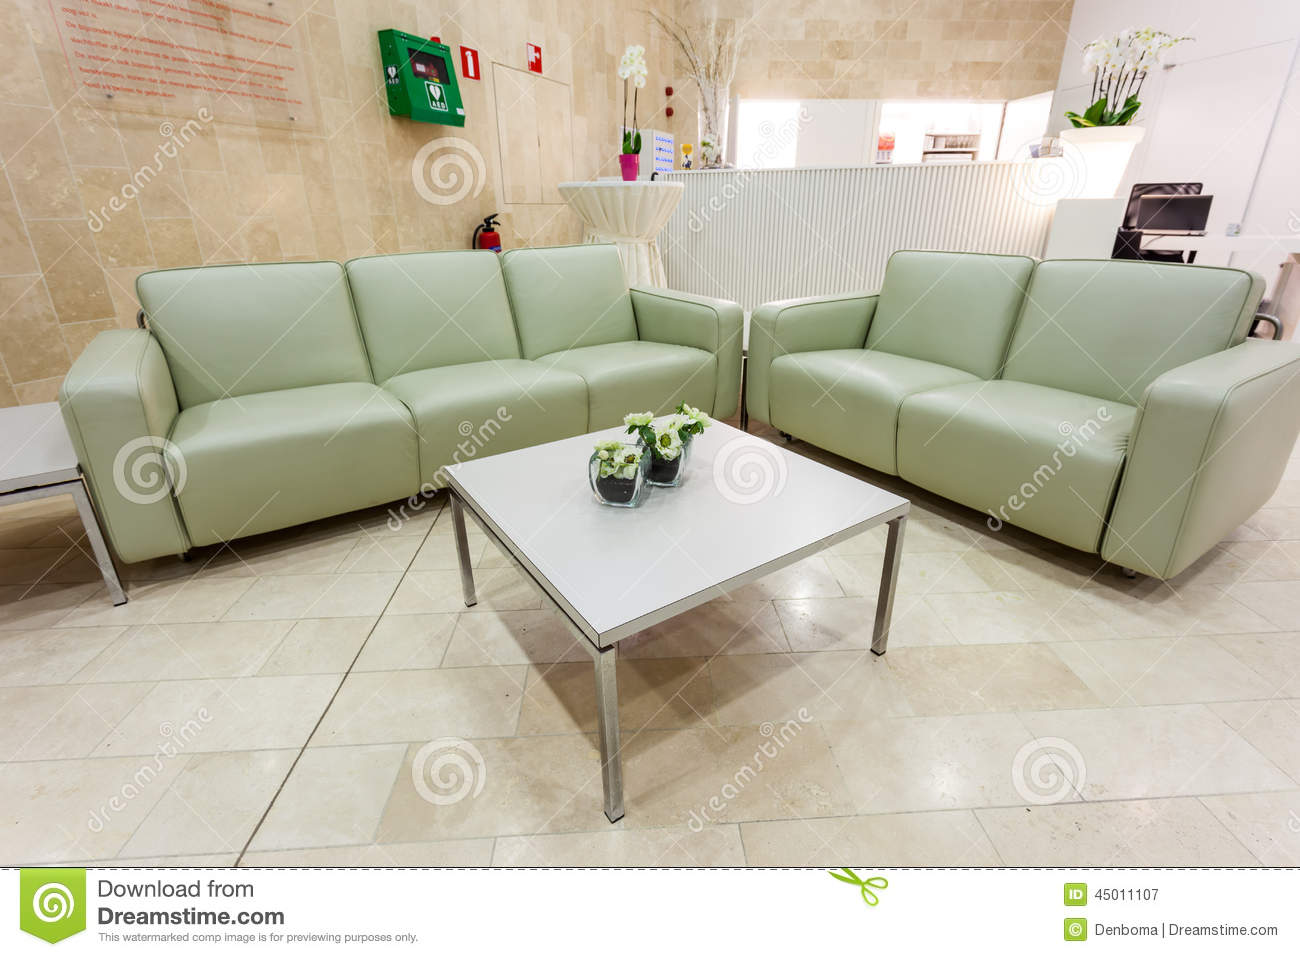 Coffee Table And Seats Stock Photo Image 45011107